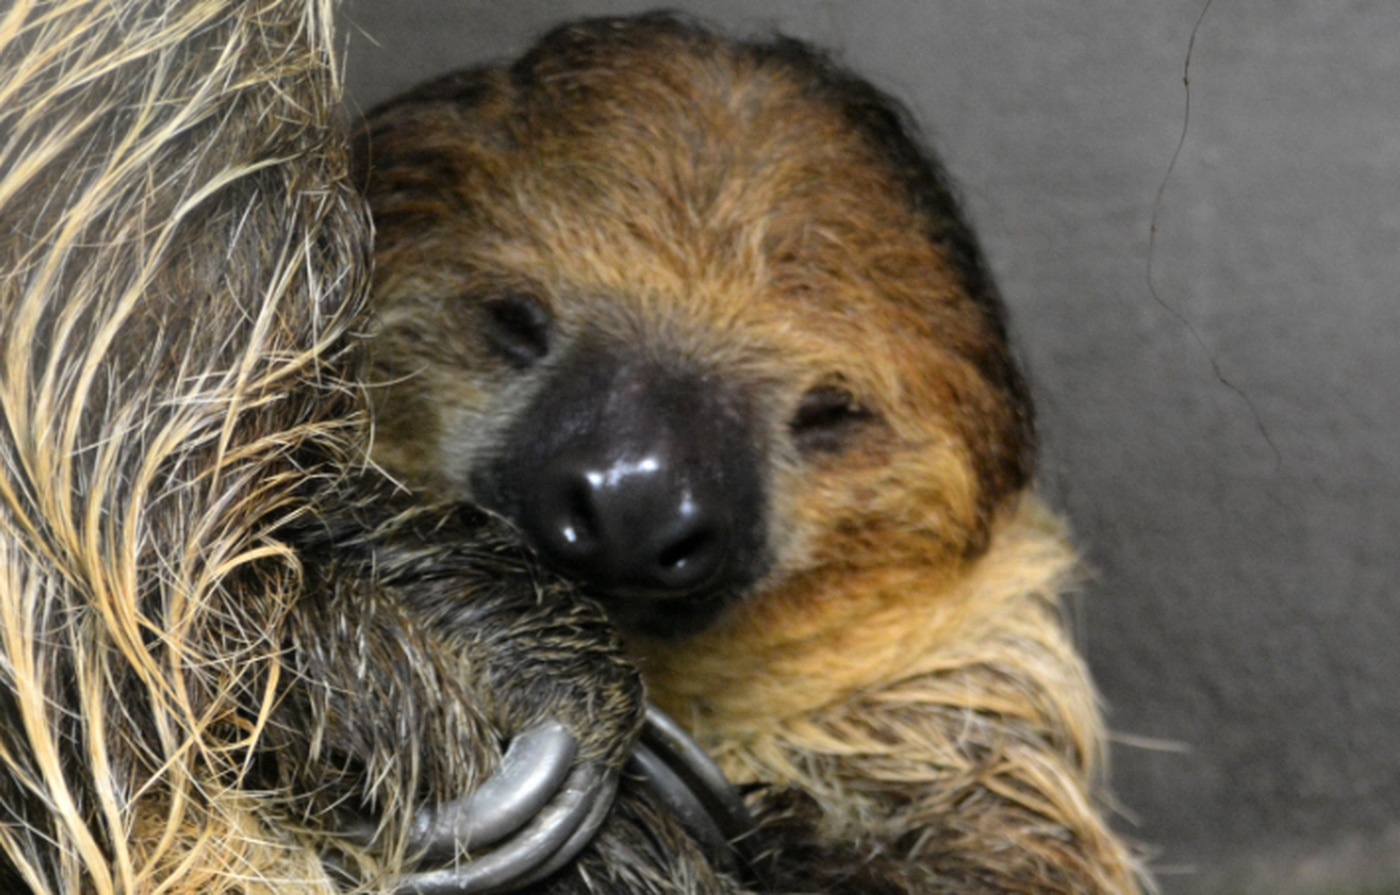 The Metro Richmond Zoo announced it will be opening a new sloth exhibit.